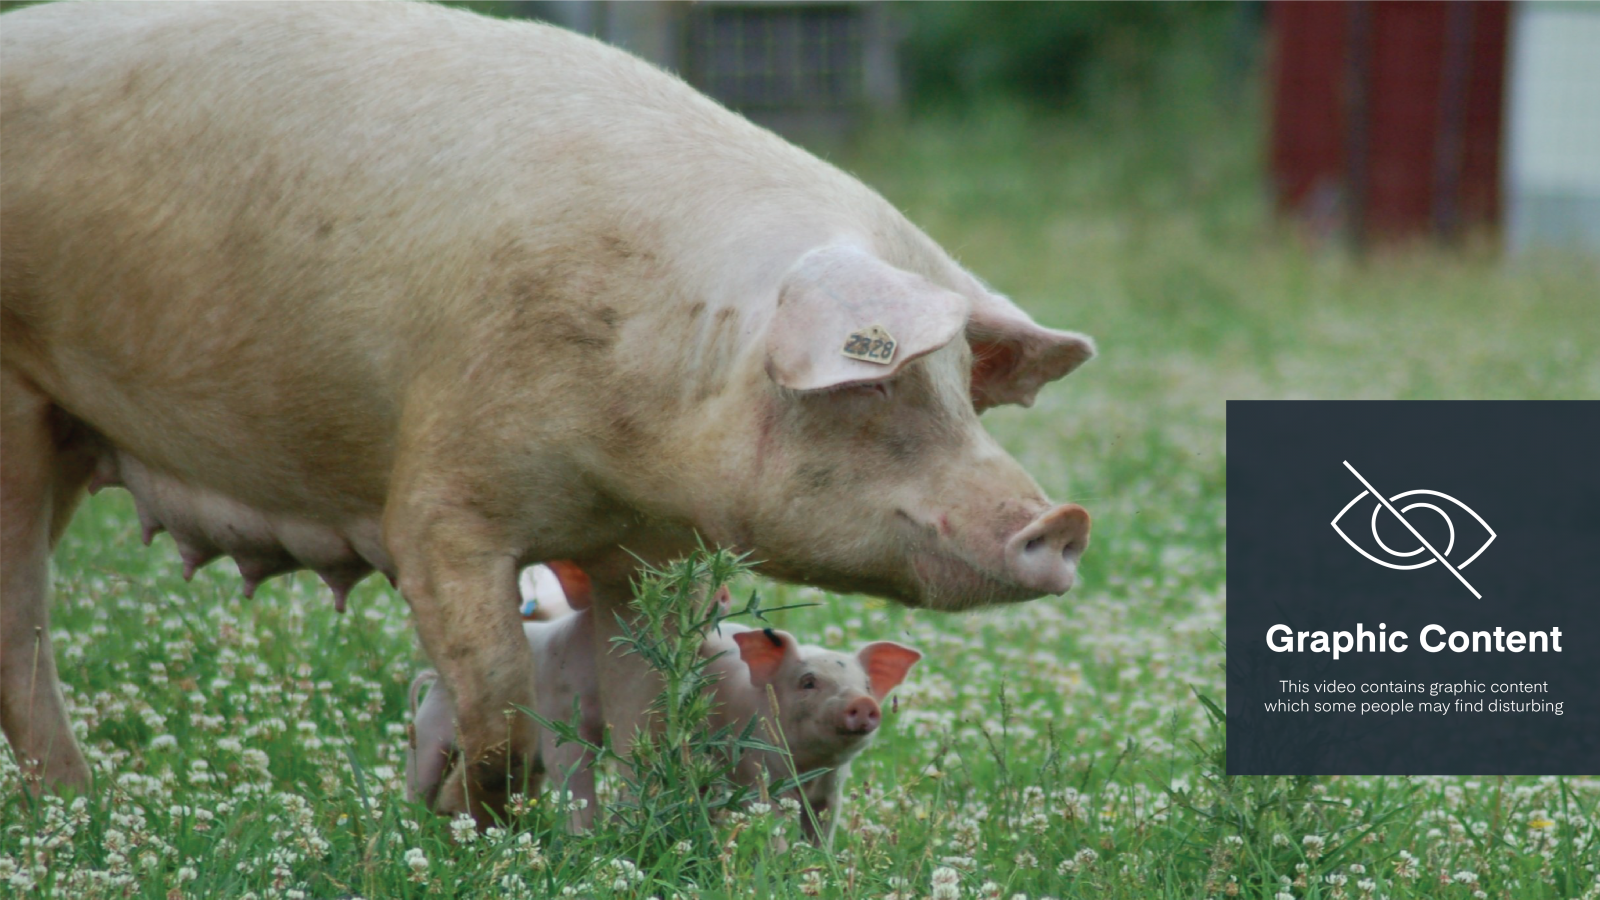 Nikki pig with her piglets at Farm Sanctuary. Graphic content warning on image.